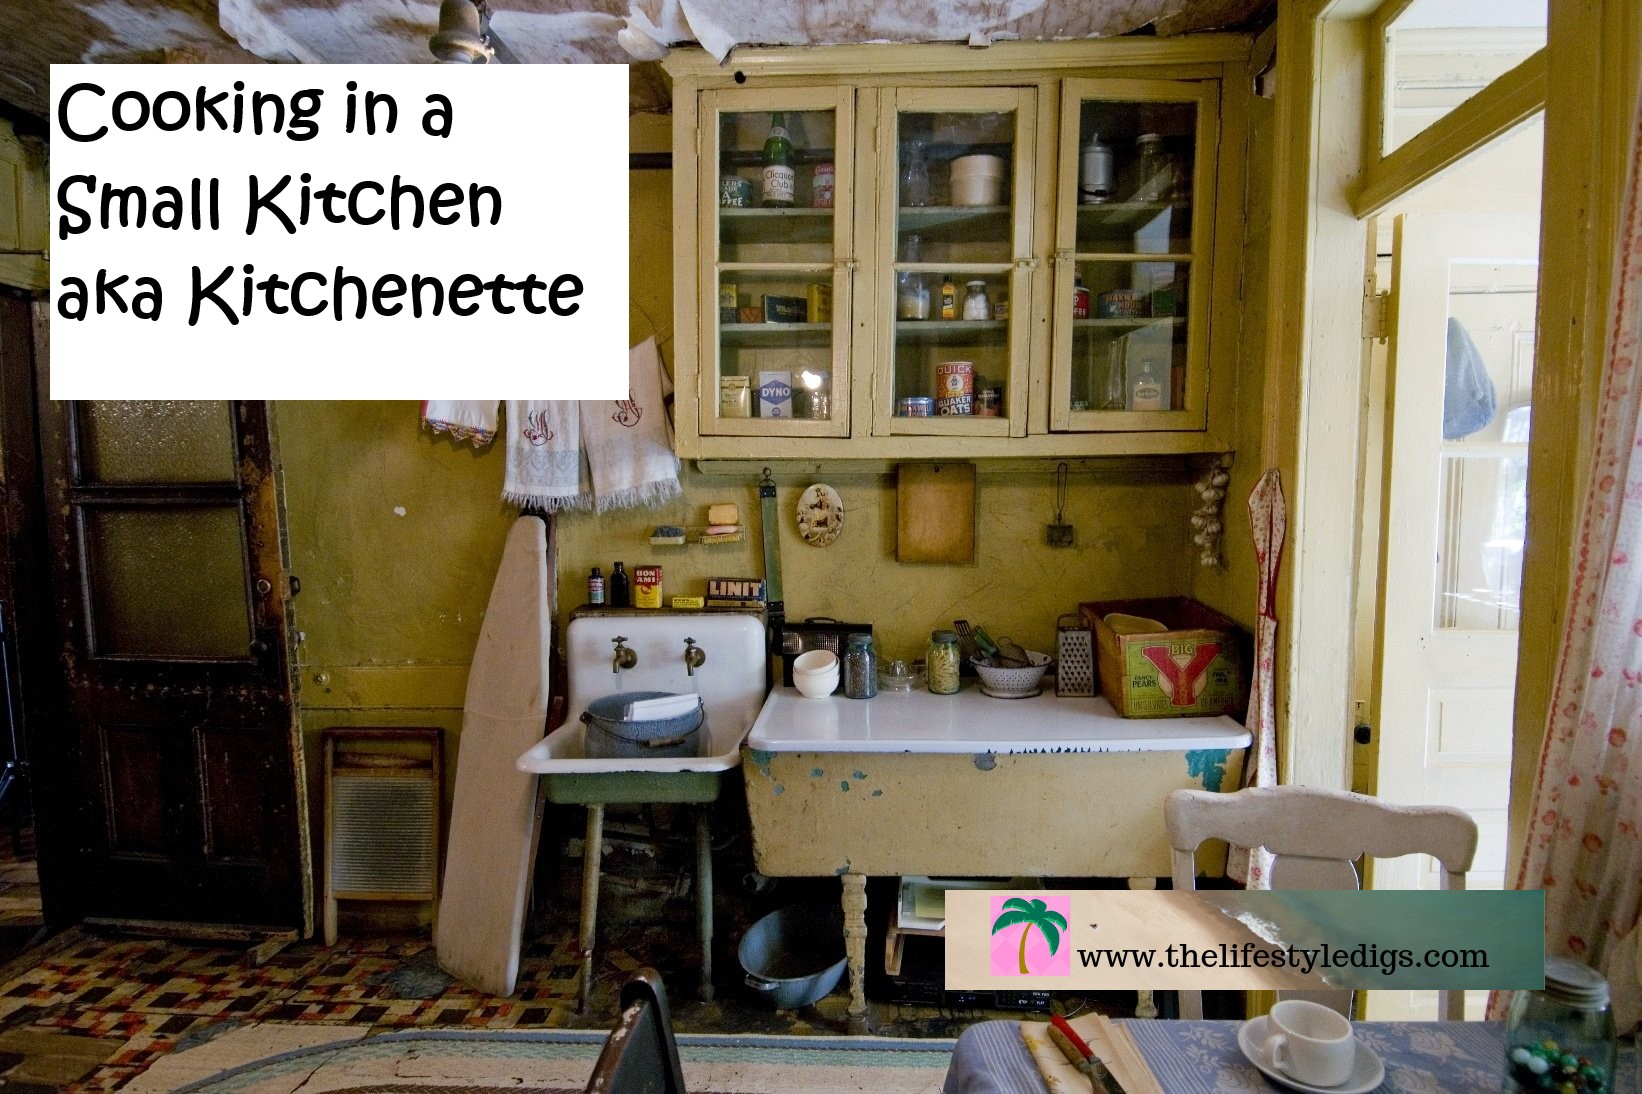 Cooking in a Small Kitchen aka Kitchenette